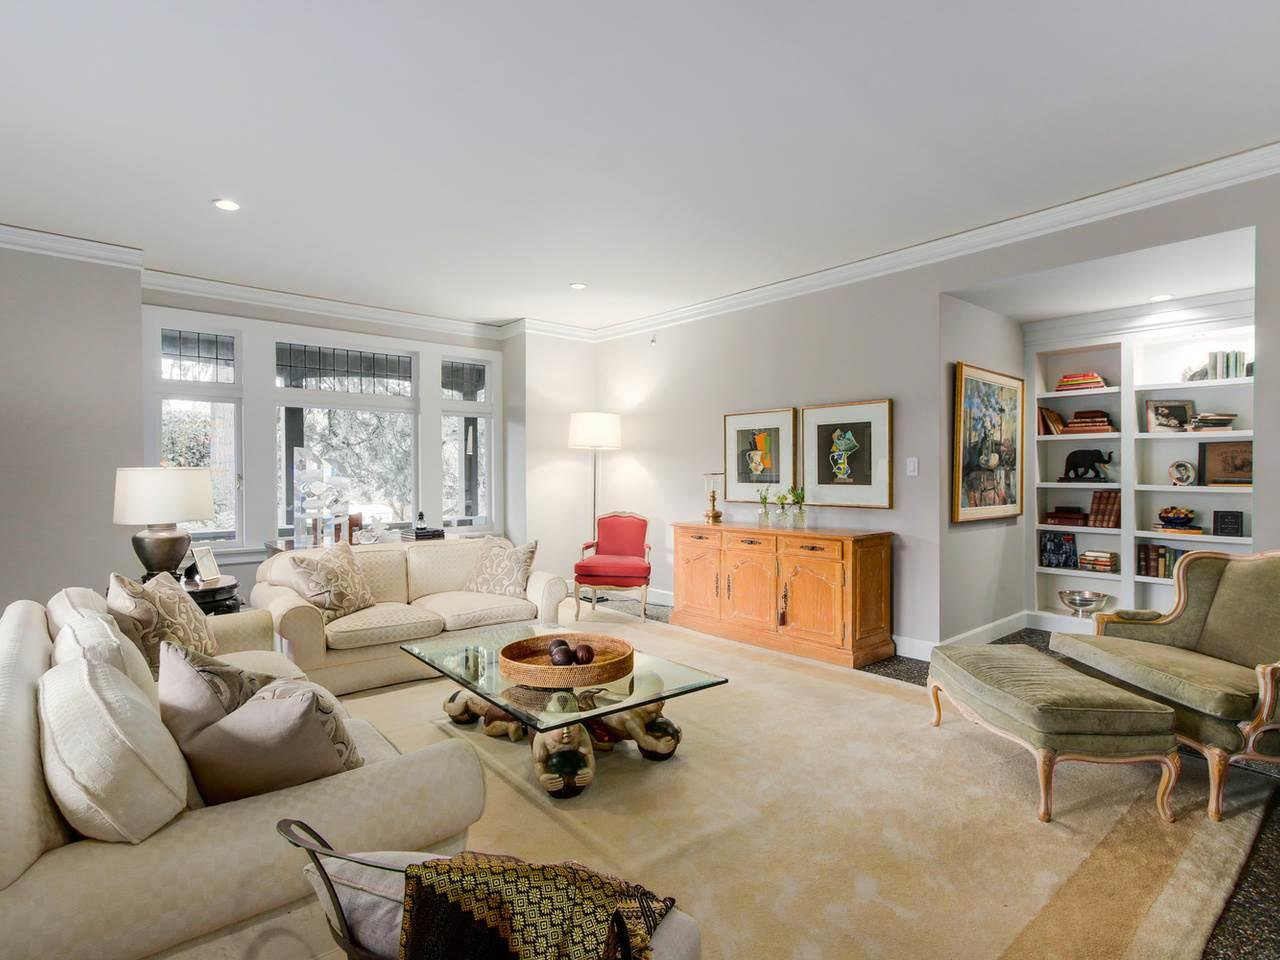 """Main Photo: 1496 MATTHEWS Avenue in Vancouver: Shaughnessy Townhouse for sale in """"BRIGHOUSE MANOR"""" (Vancouver West)  : MLS®# R2418292"""